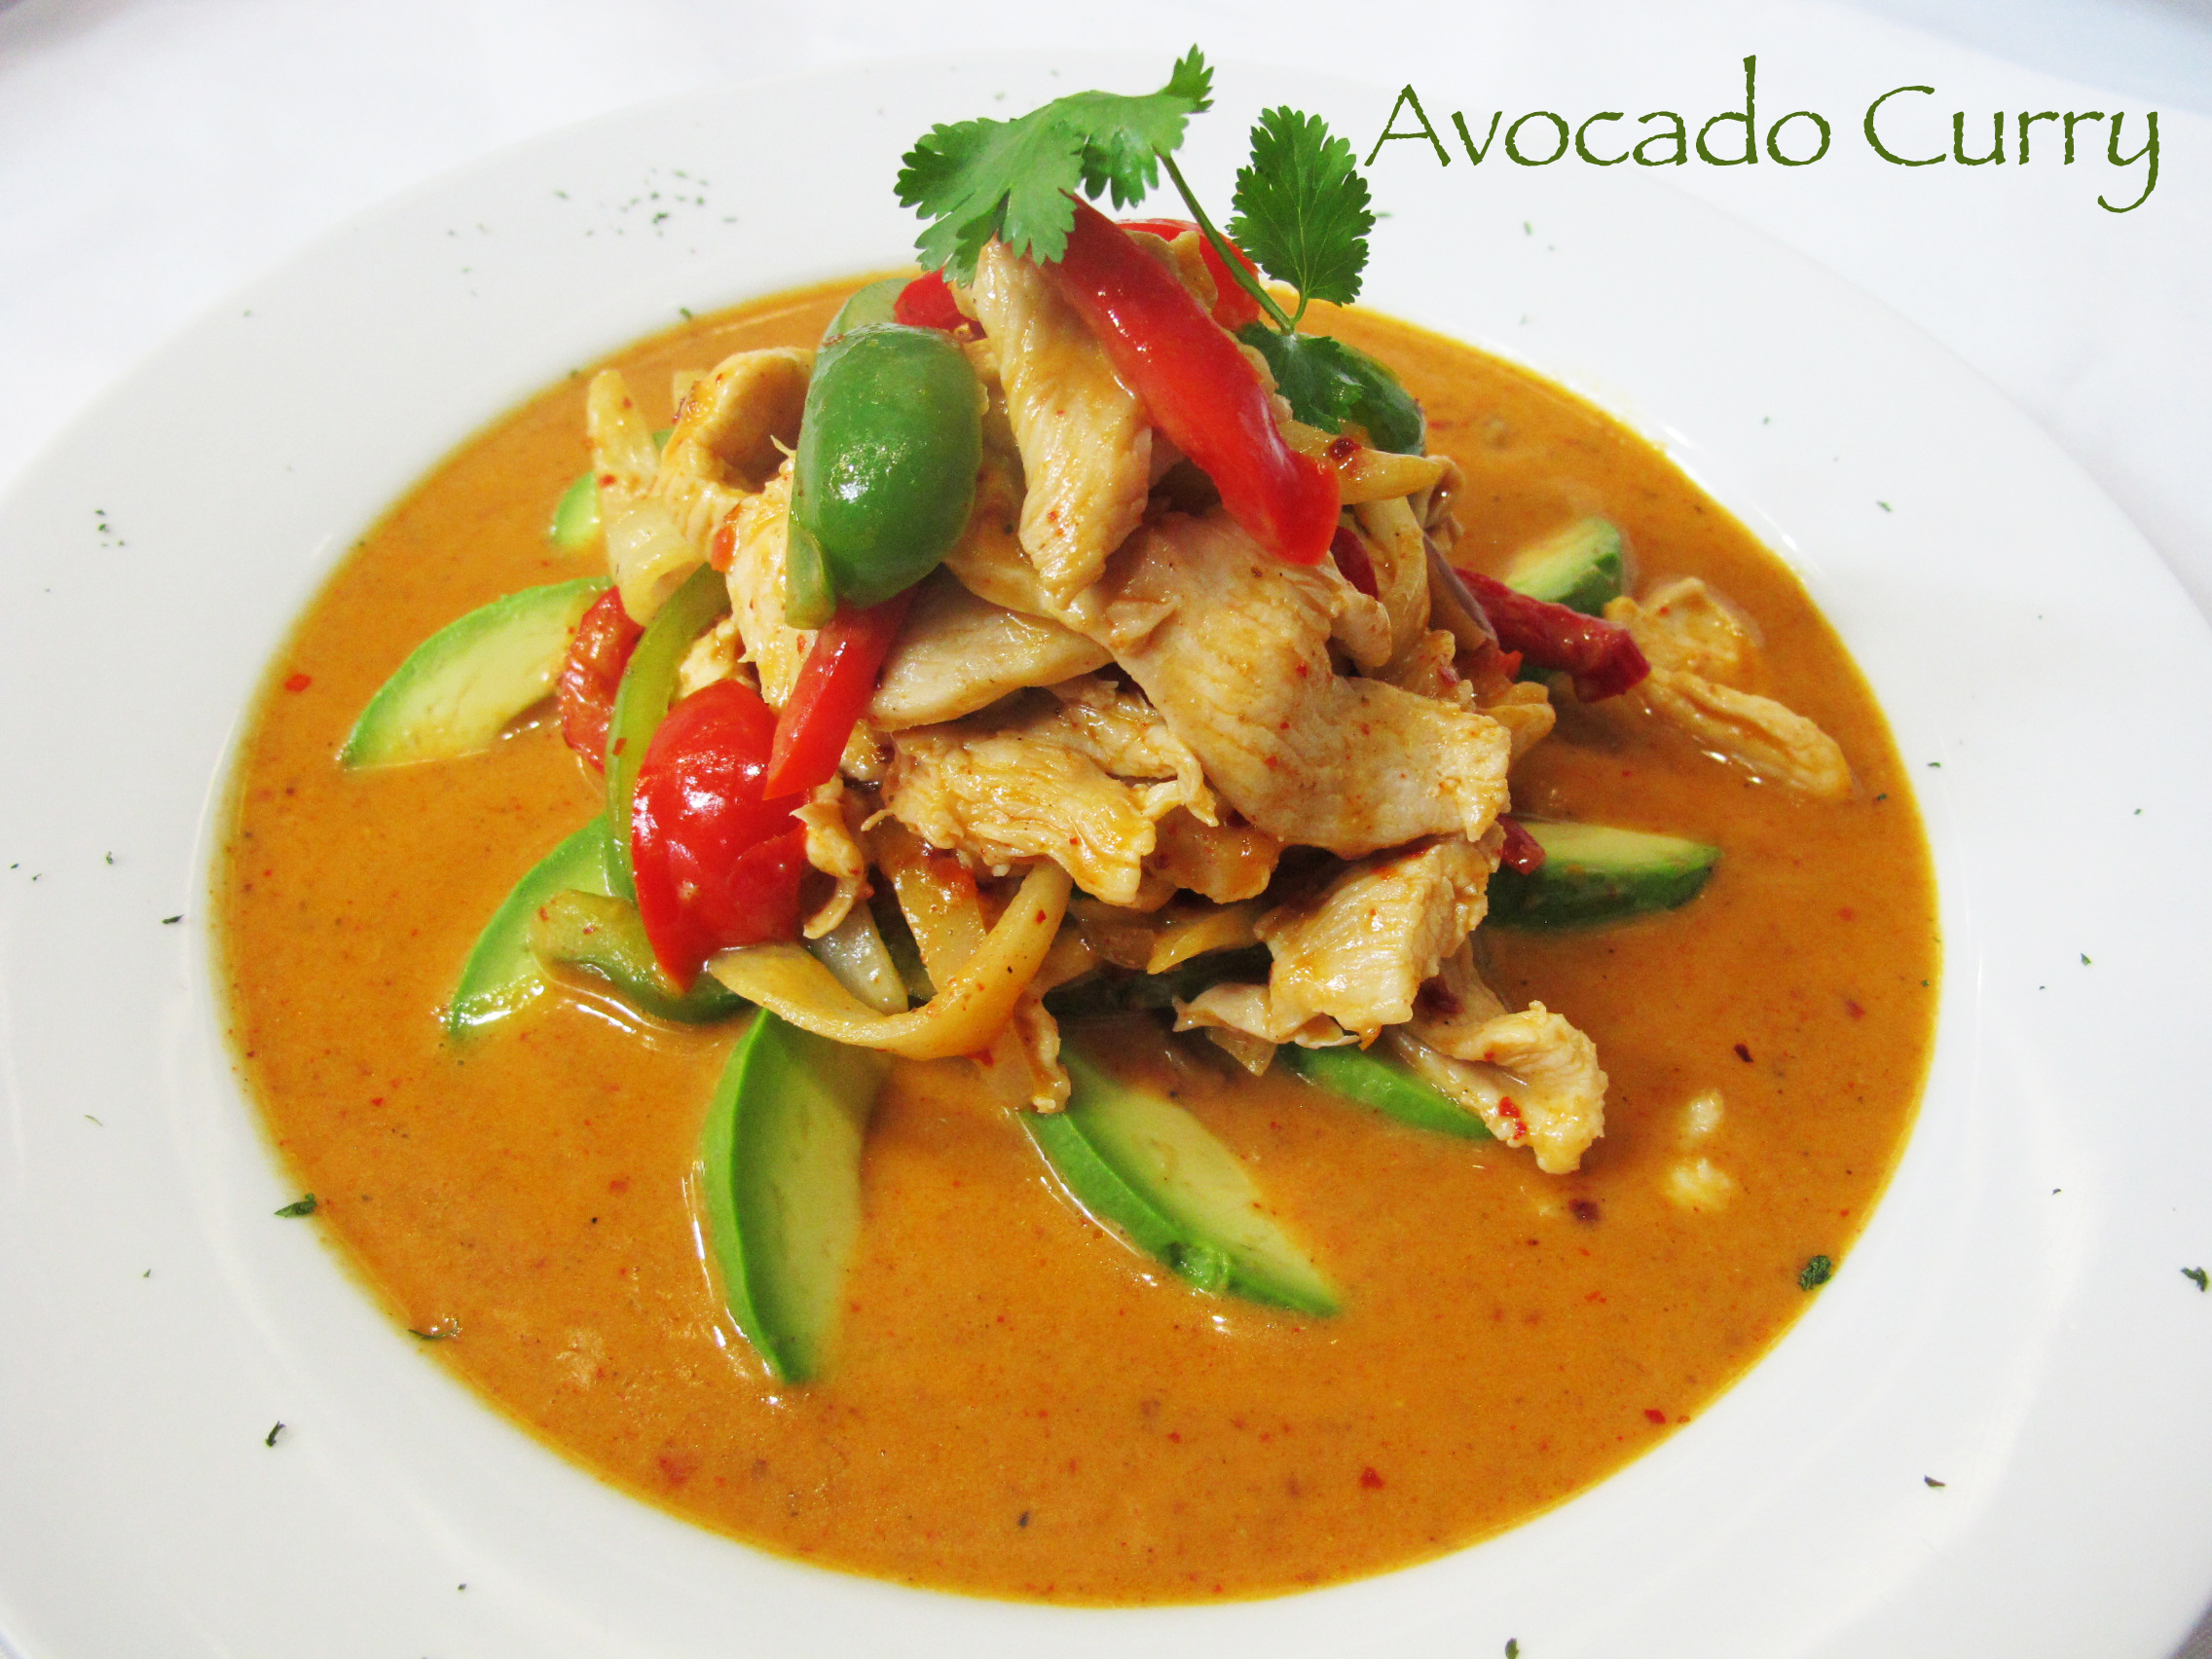 Avocado Curry 1.jpg